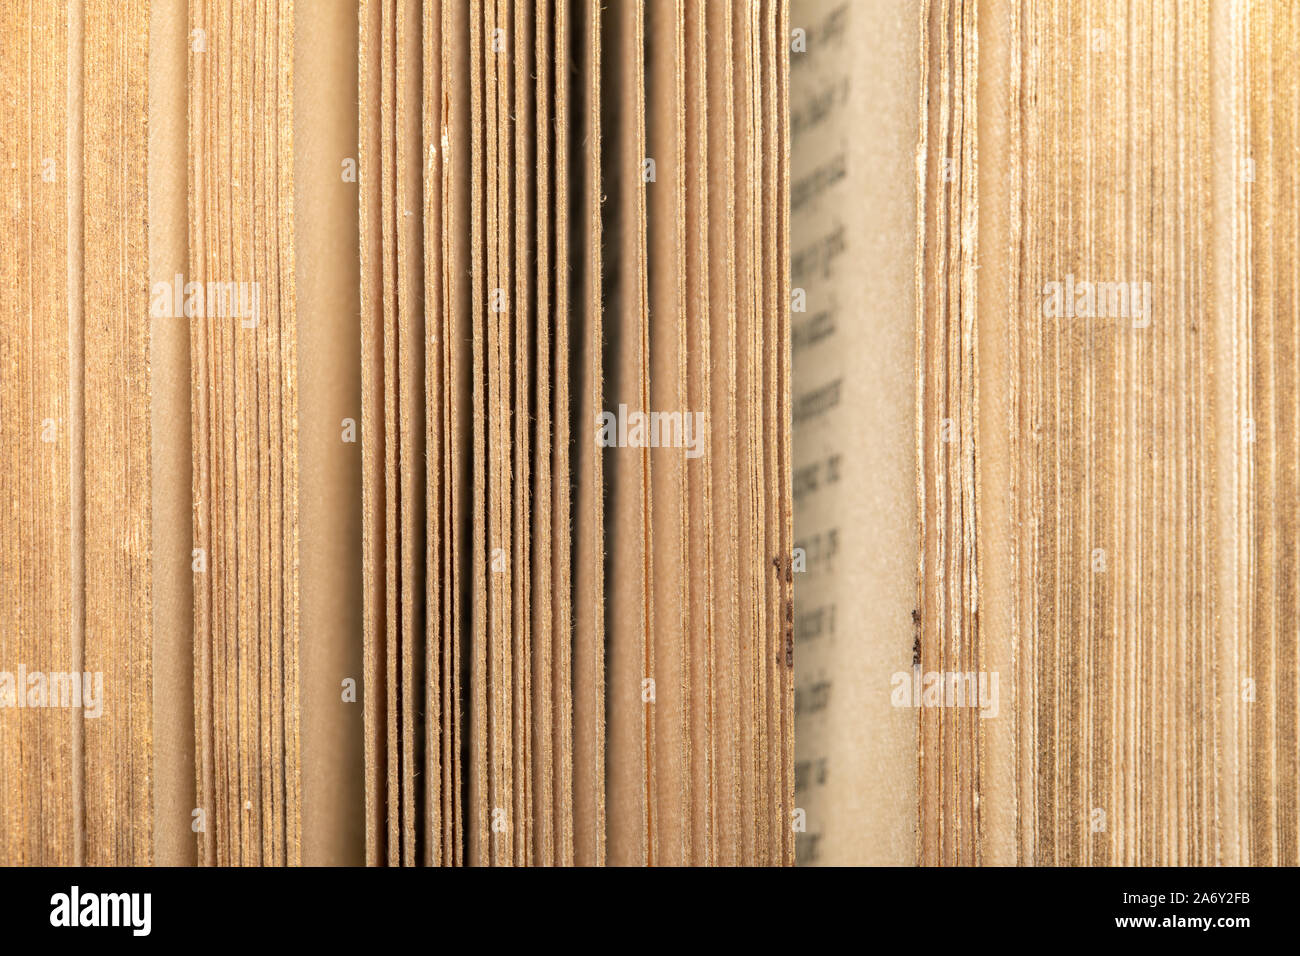 Old books - Pages, binding, gildings. Backgrounds and textures, vintage and ancient knowledge resources. Stock Photo